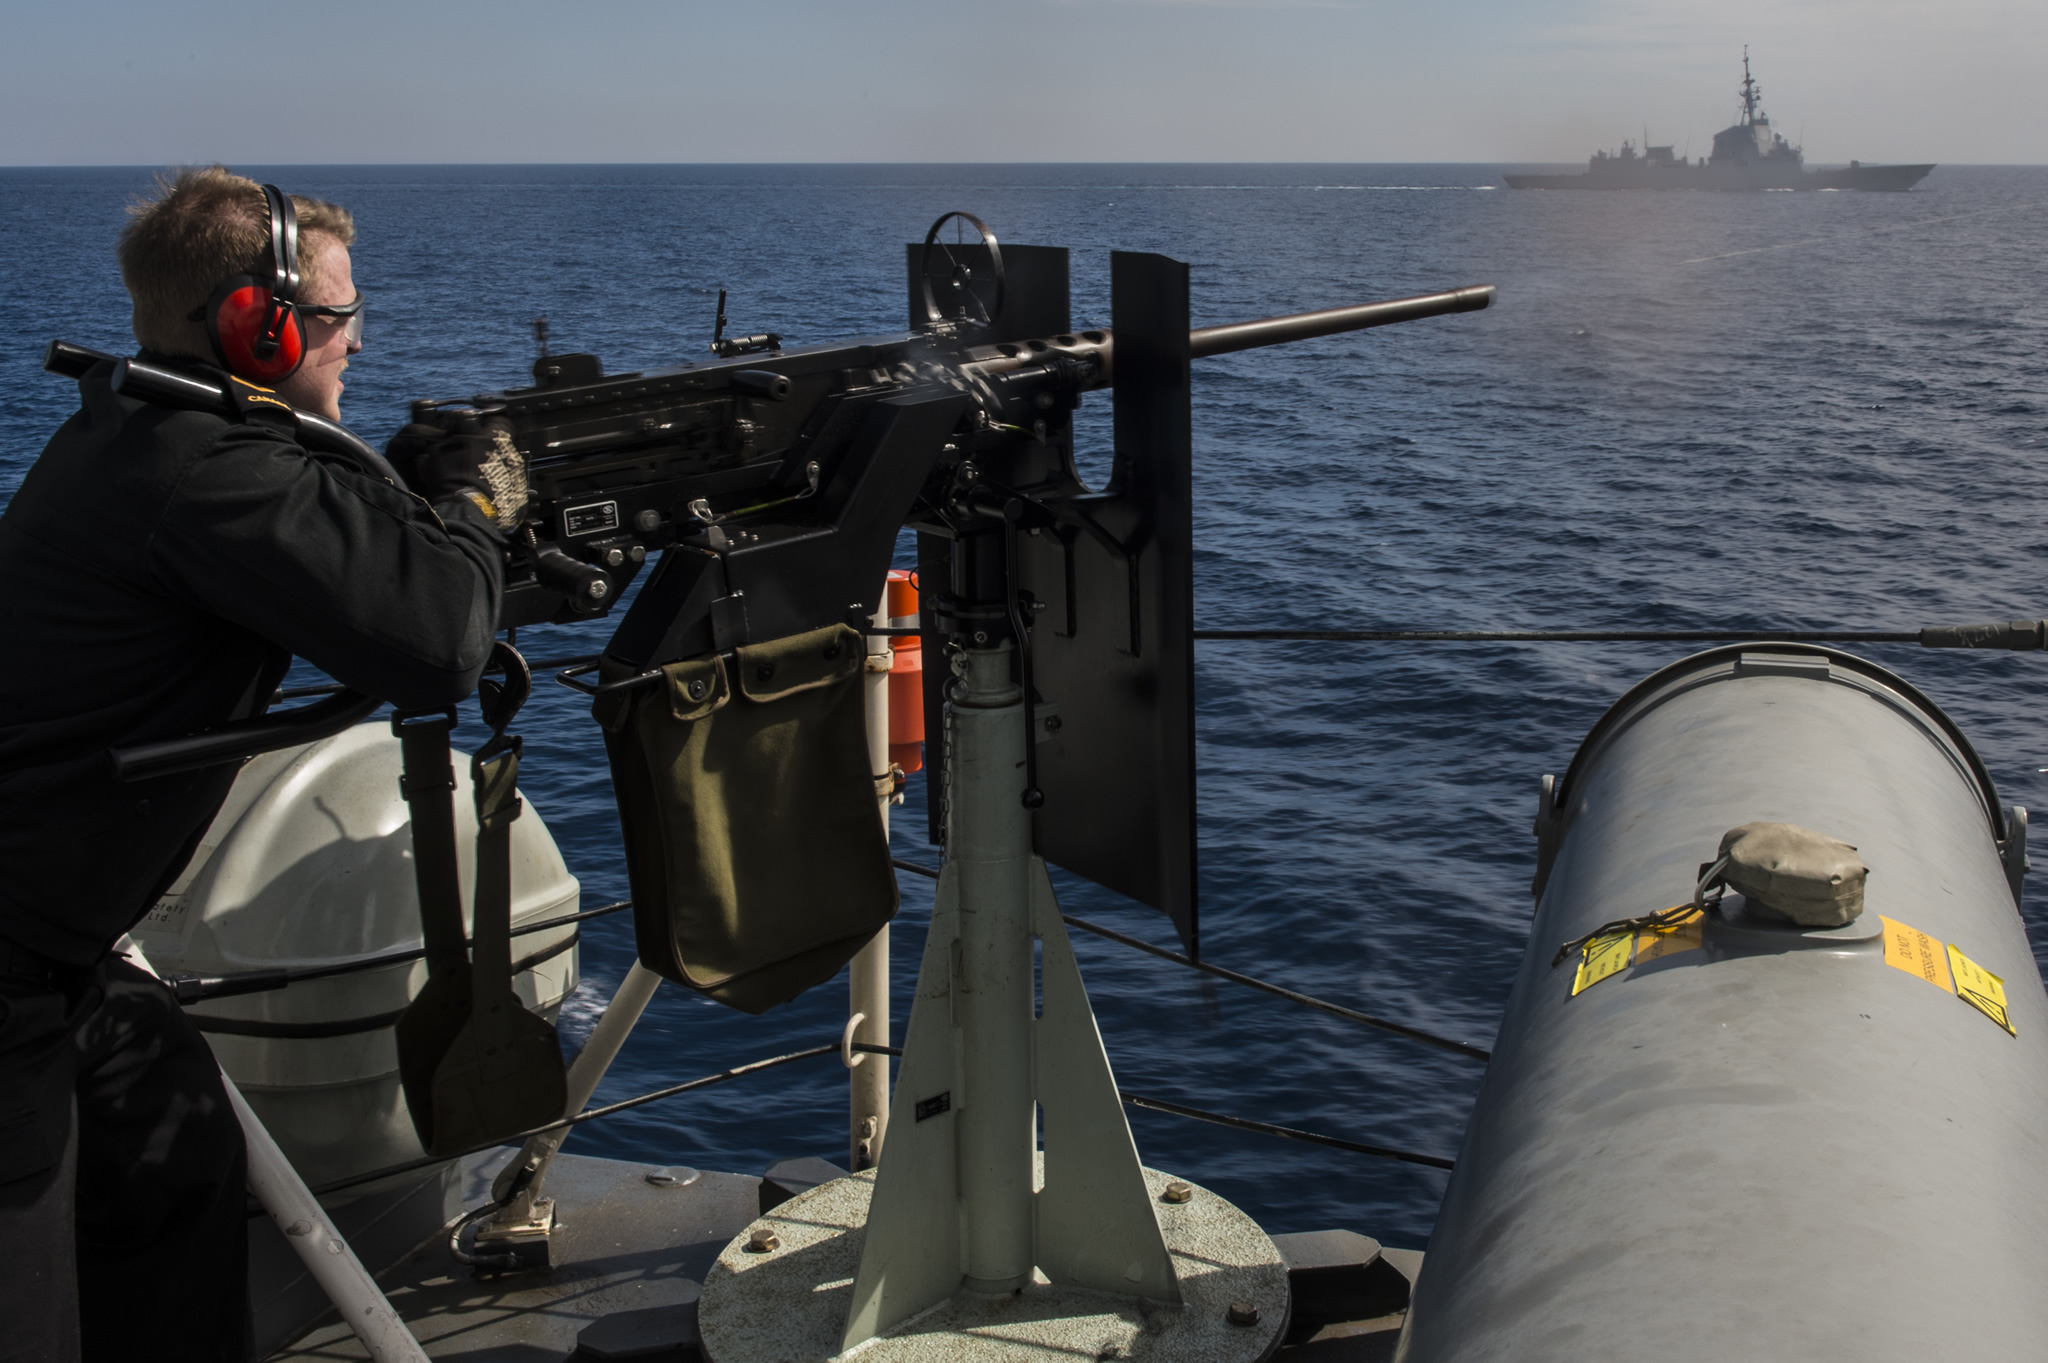 Mediterranean Sea. March 21, 2017 – Boatswain Able Seaman (AB) Kyle Hutchinson operates the .50 Calibre Heavy Machine Gun during a warning shot exercise onboard Her Majesty's Canadian Ship (HMCS) St. John's as it transits the Mediterranean Sea during Operation REASSURANCE. (Image by Leading Seaman Ogle Henry, Formation Imaging Services)